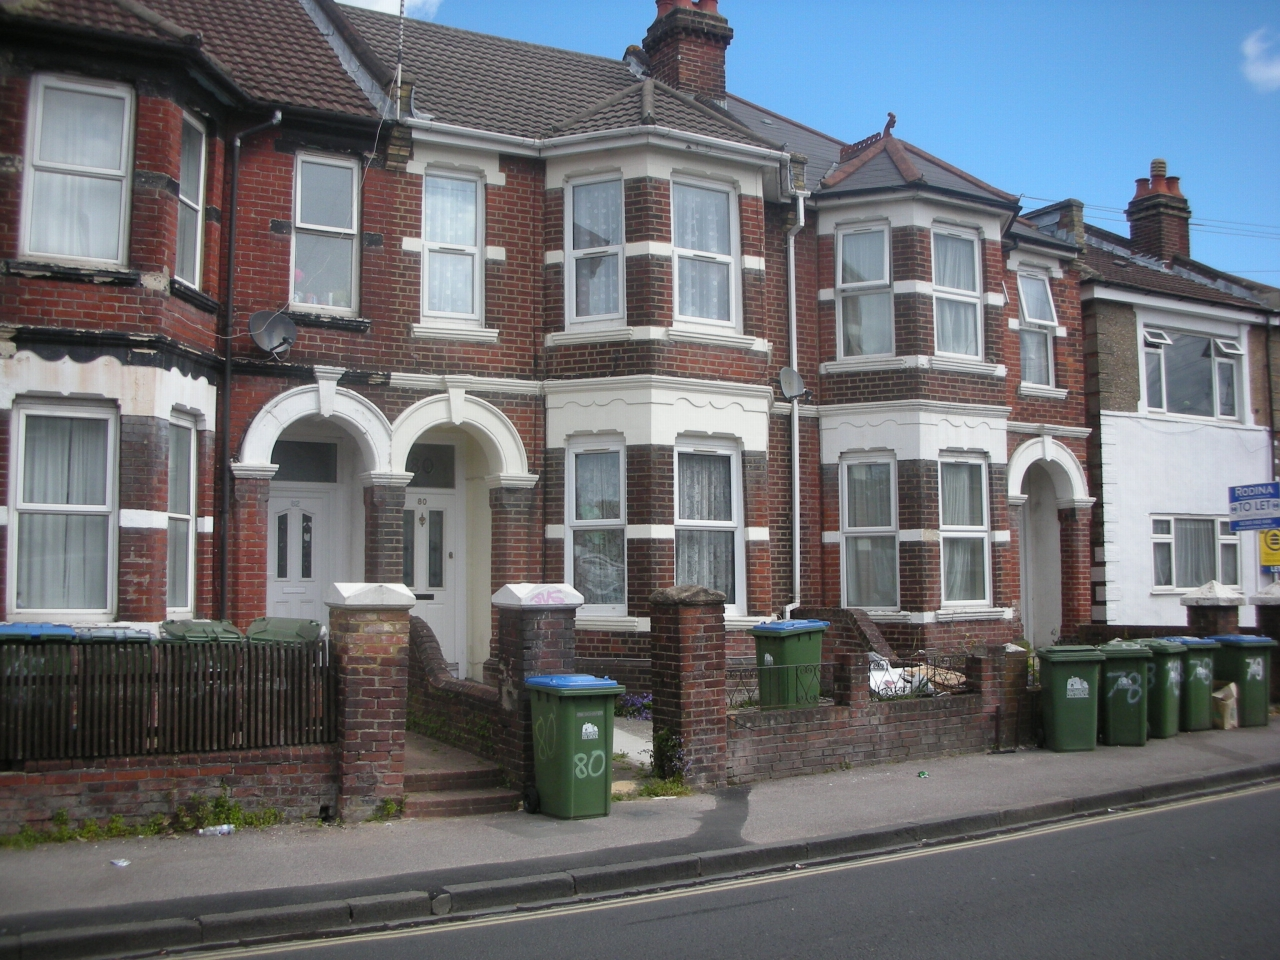 Bedsit Flat/apartment To Let in Southampton - Photograph 1